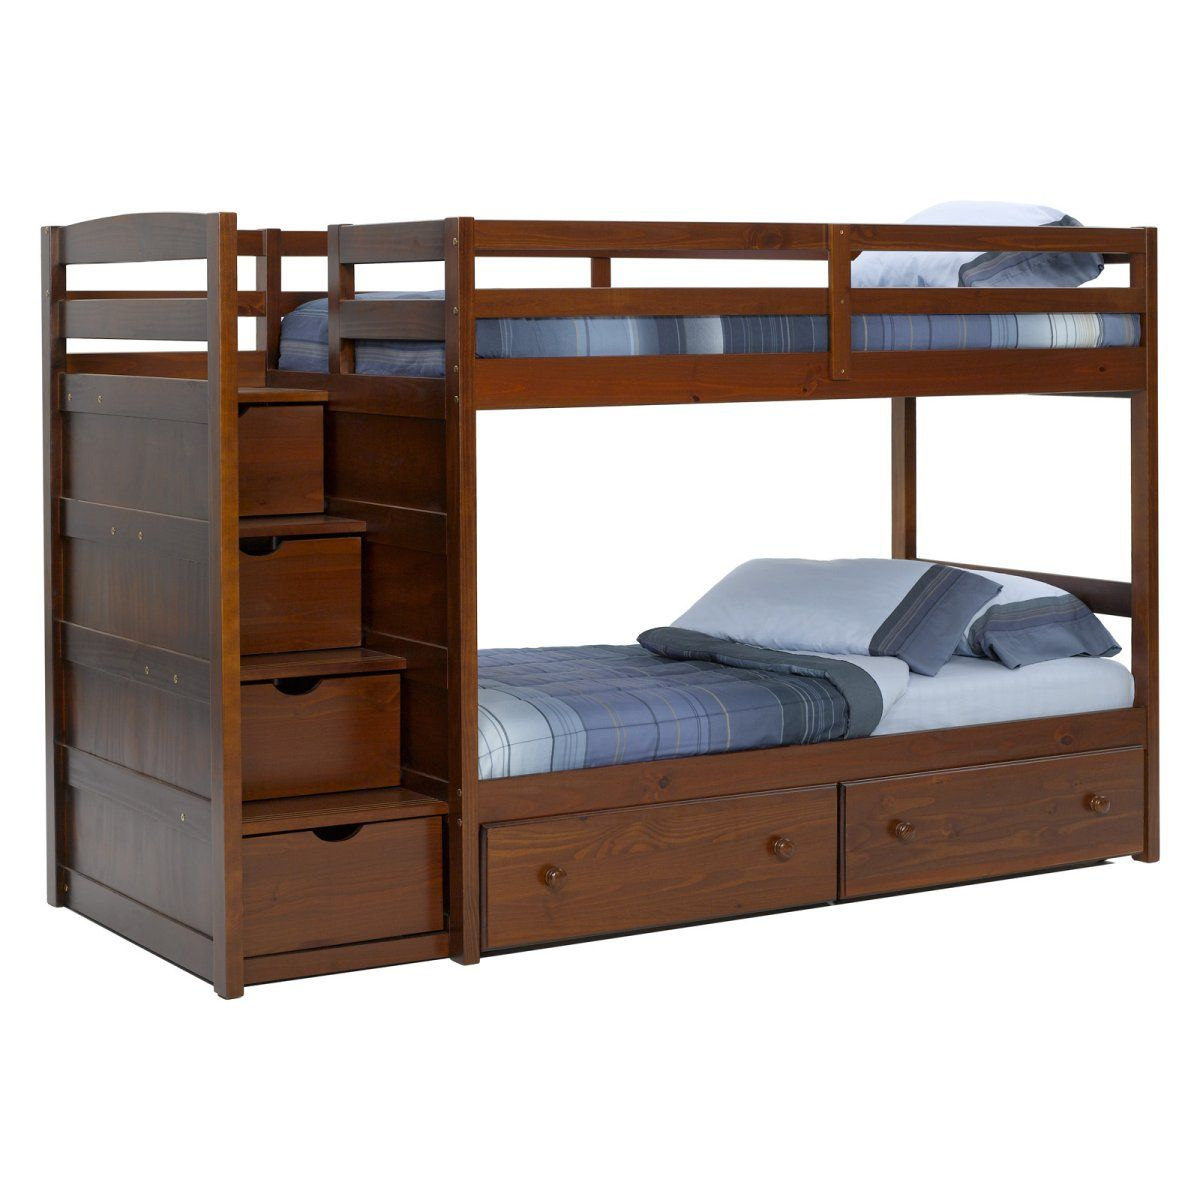 Best Pine Ridge Front Loading Stair Bunk Bed Chocolate Twin 640 x 480